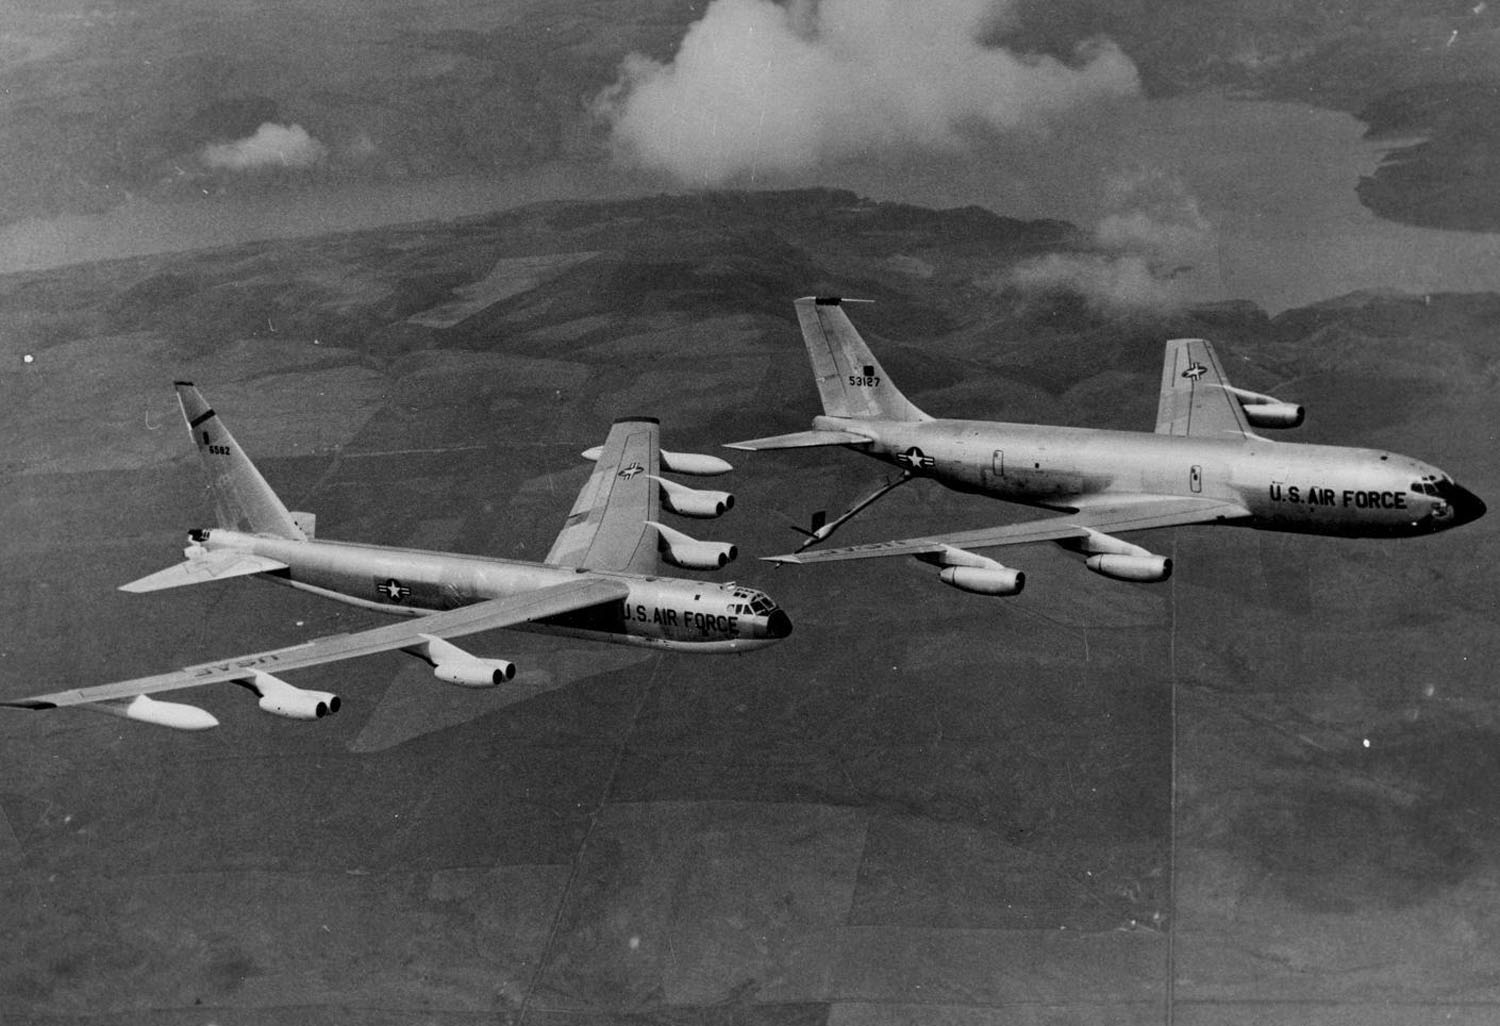 http://www.vr-24.org/SquadronScrapbook/B52_KC135.jpg